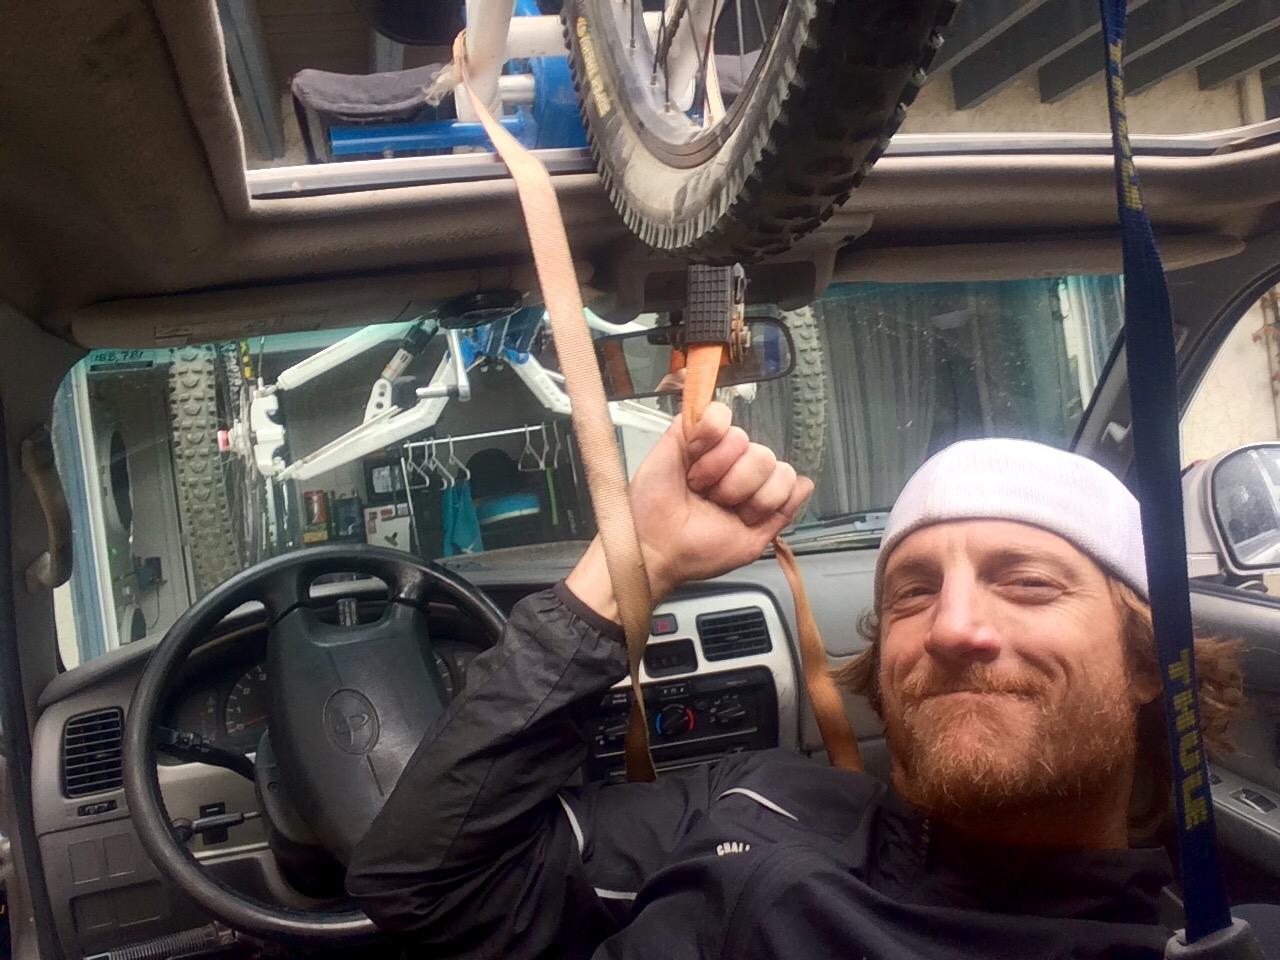 I hoisted my bike on top of my car myself. Super proud but shitty gas mileage.